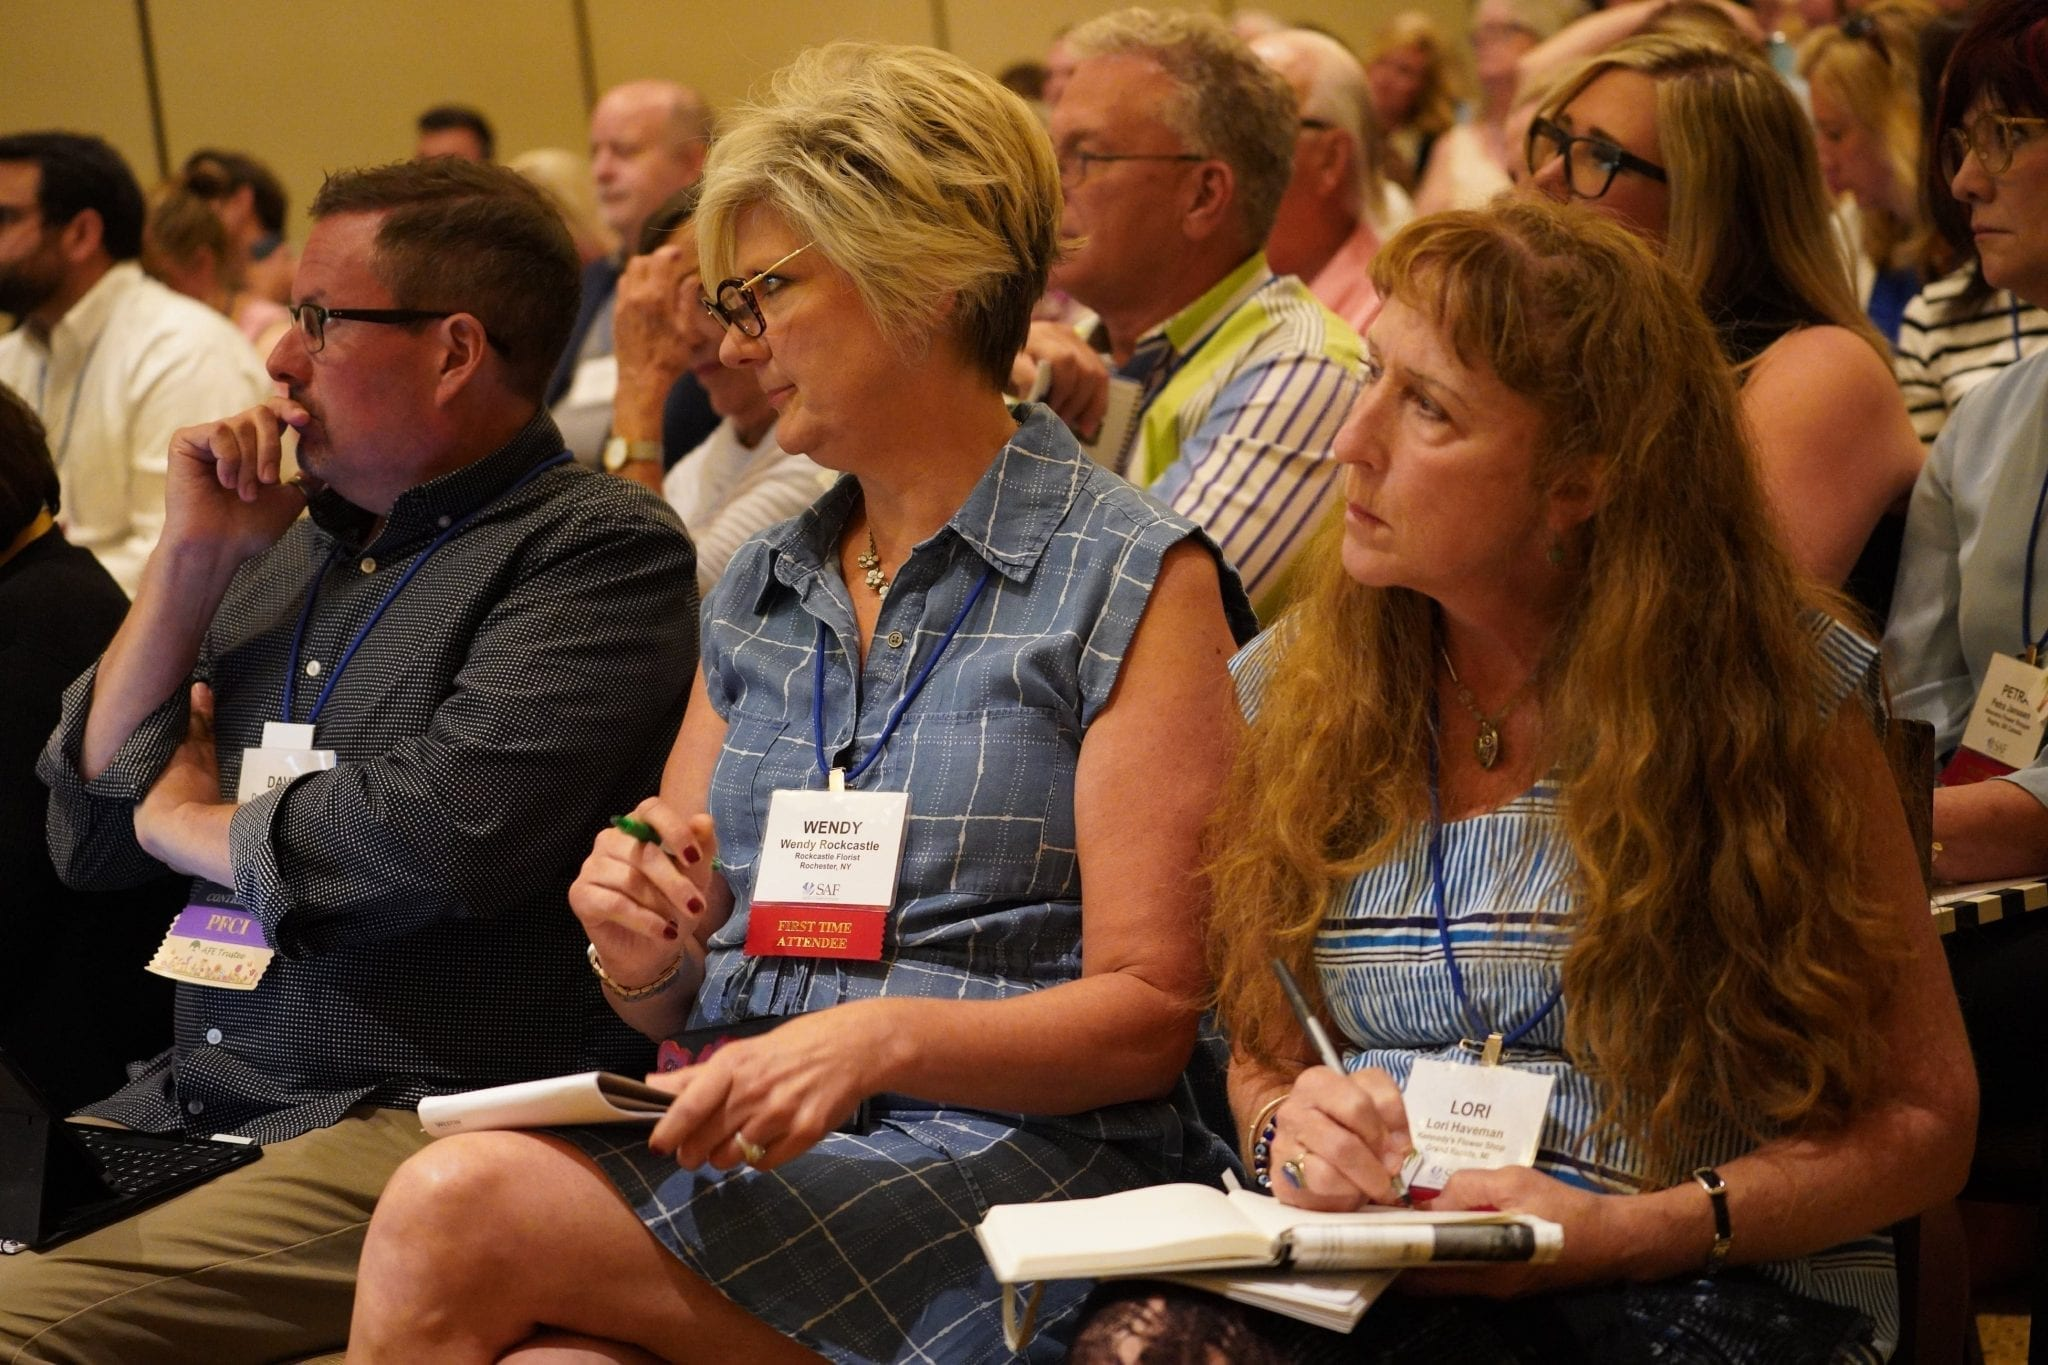 """A packed crowd—including Wendy Rockcastle of Rockcastle Florist in Rochester, New York, and Lori Haveman of Kennedy's Flower shop in Grand Rapids, Michigan—hear about trends and technology coming toward the industry during The Future of the Retail Florist"""" educational session."""